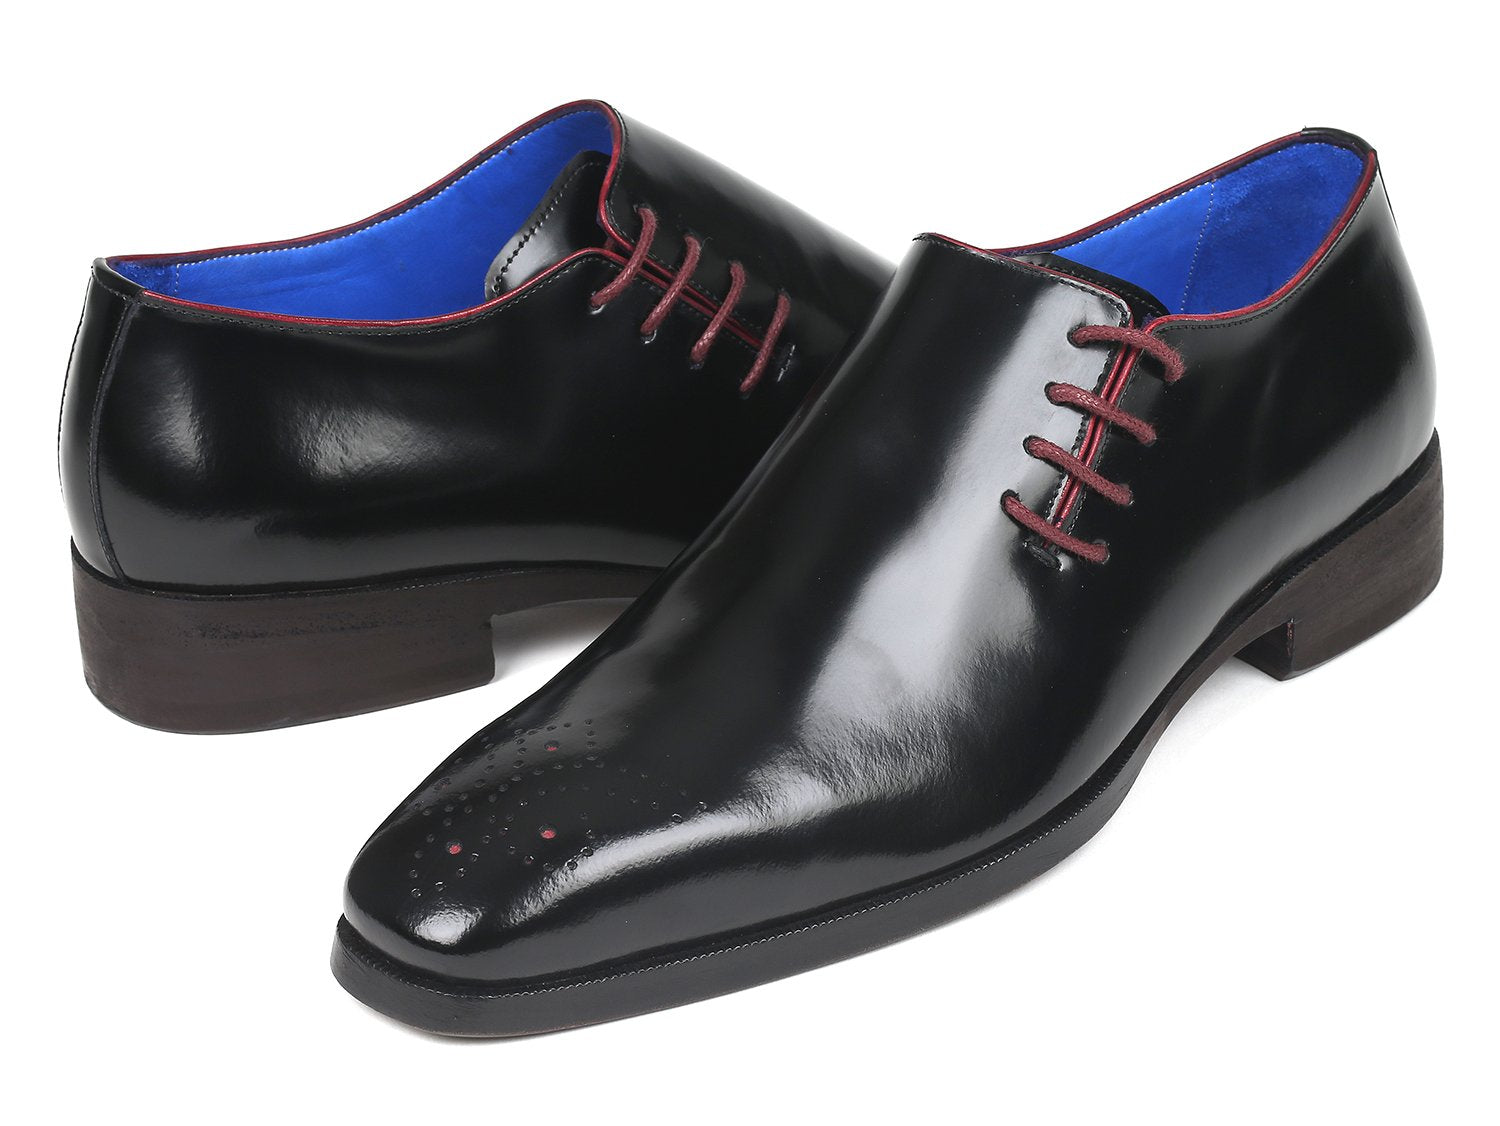 Paul Parkman Side Lace Oxfords Black Polished Leather (ID#981X65)